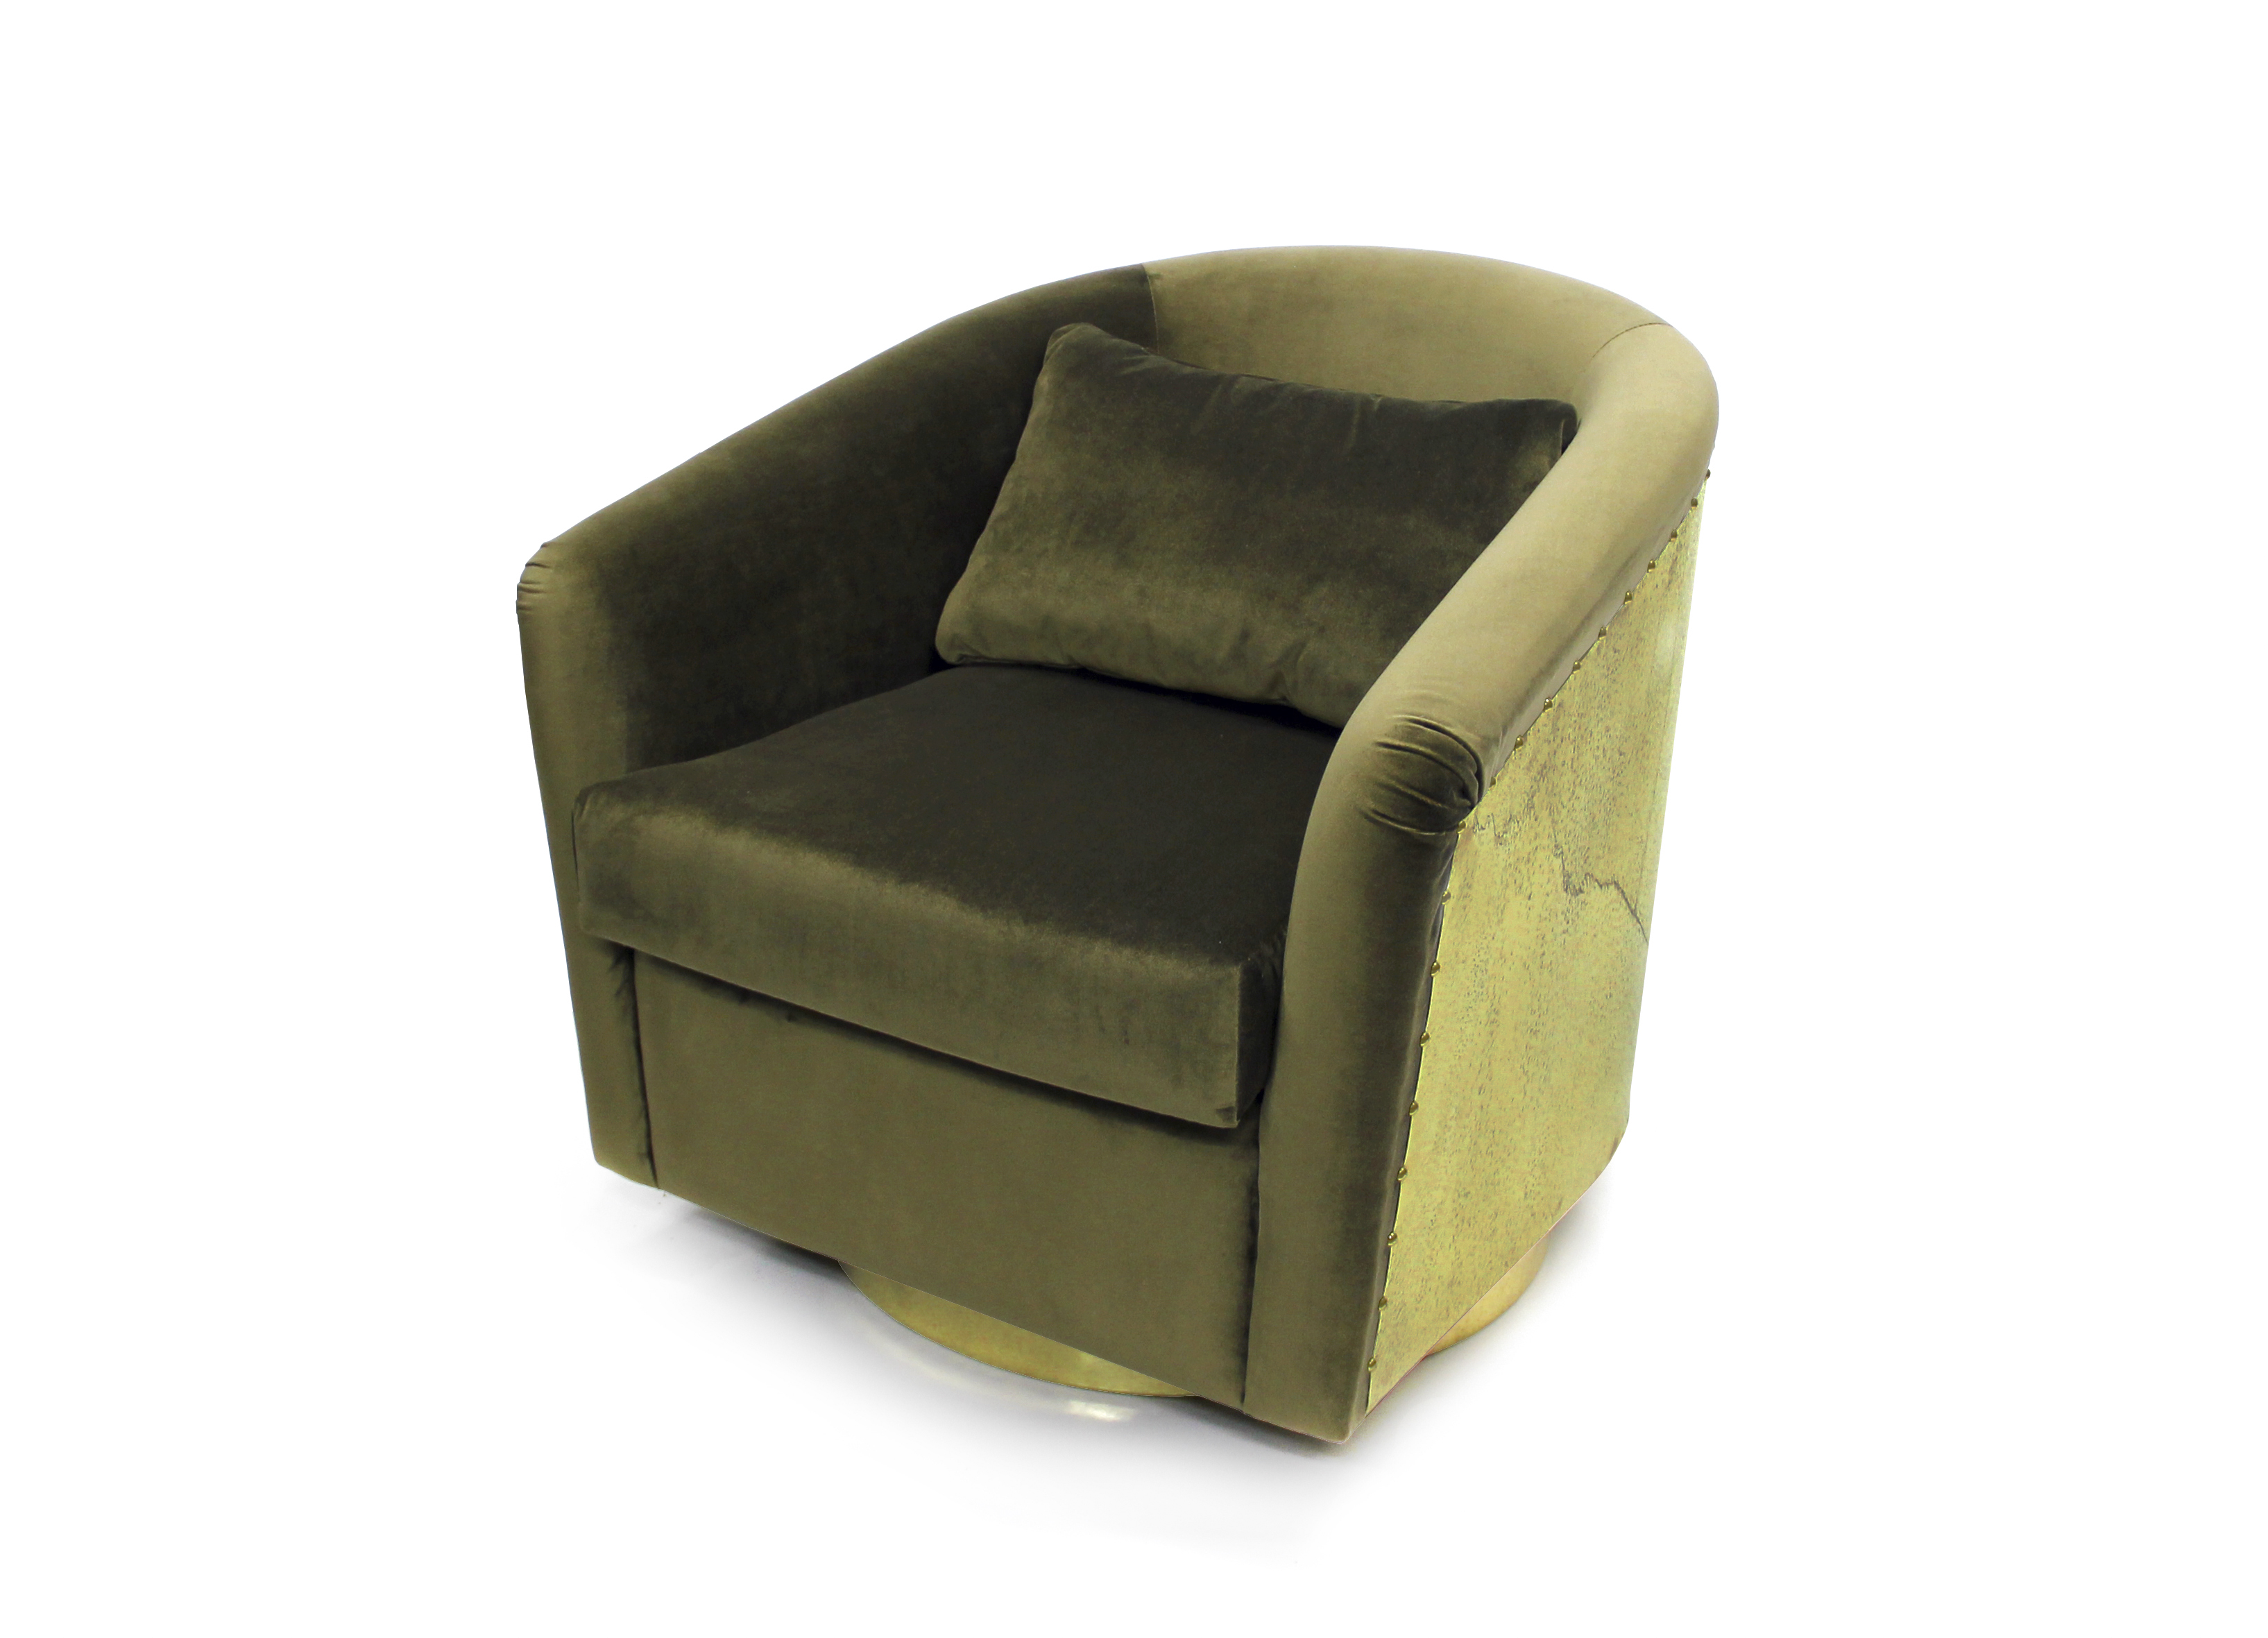 incredible living room chairs 7 Incredible Living Room Chairs Inspired By Nature earth armchair 2 HR